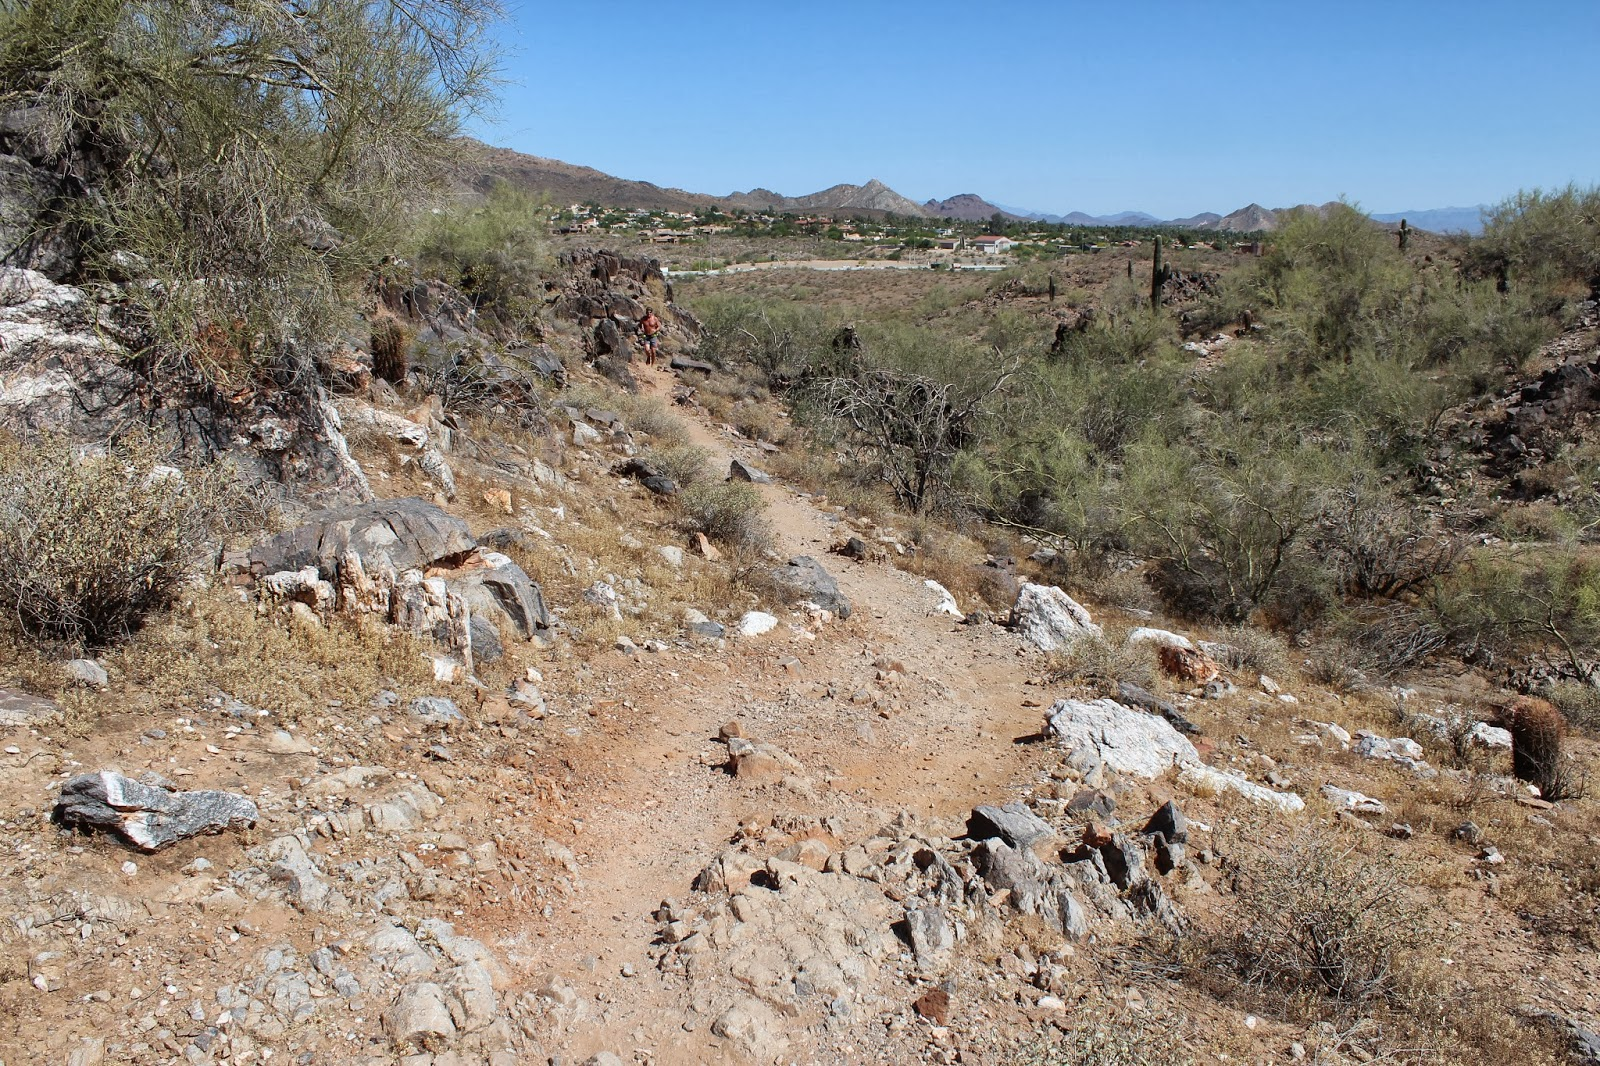 gjhikes.com: Dreamy Draw Nature Trail on echo canyon trail map, springs trail map, squaw peak hiking trail map, red mountain trail map, agua fria river trail map, piestewa peak trail map, bell rock pathway trail map, san marcos trail map, lost dog wash trail map, granite mountain trail map, san tan trail map, phoenix mountains preserve trail map, salt river trail map, bartlett lake trail map, saddle mountain trail map, mcdowell mountain regional park trail map, highland trail map, mcdowell sonoran preserve trail map, north mountain trail map, cloud peak trail map,